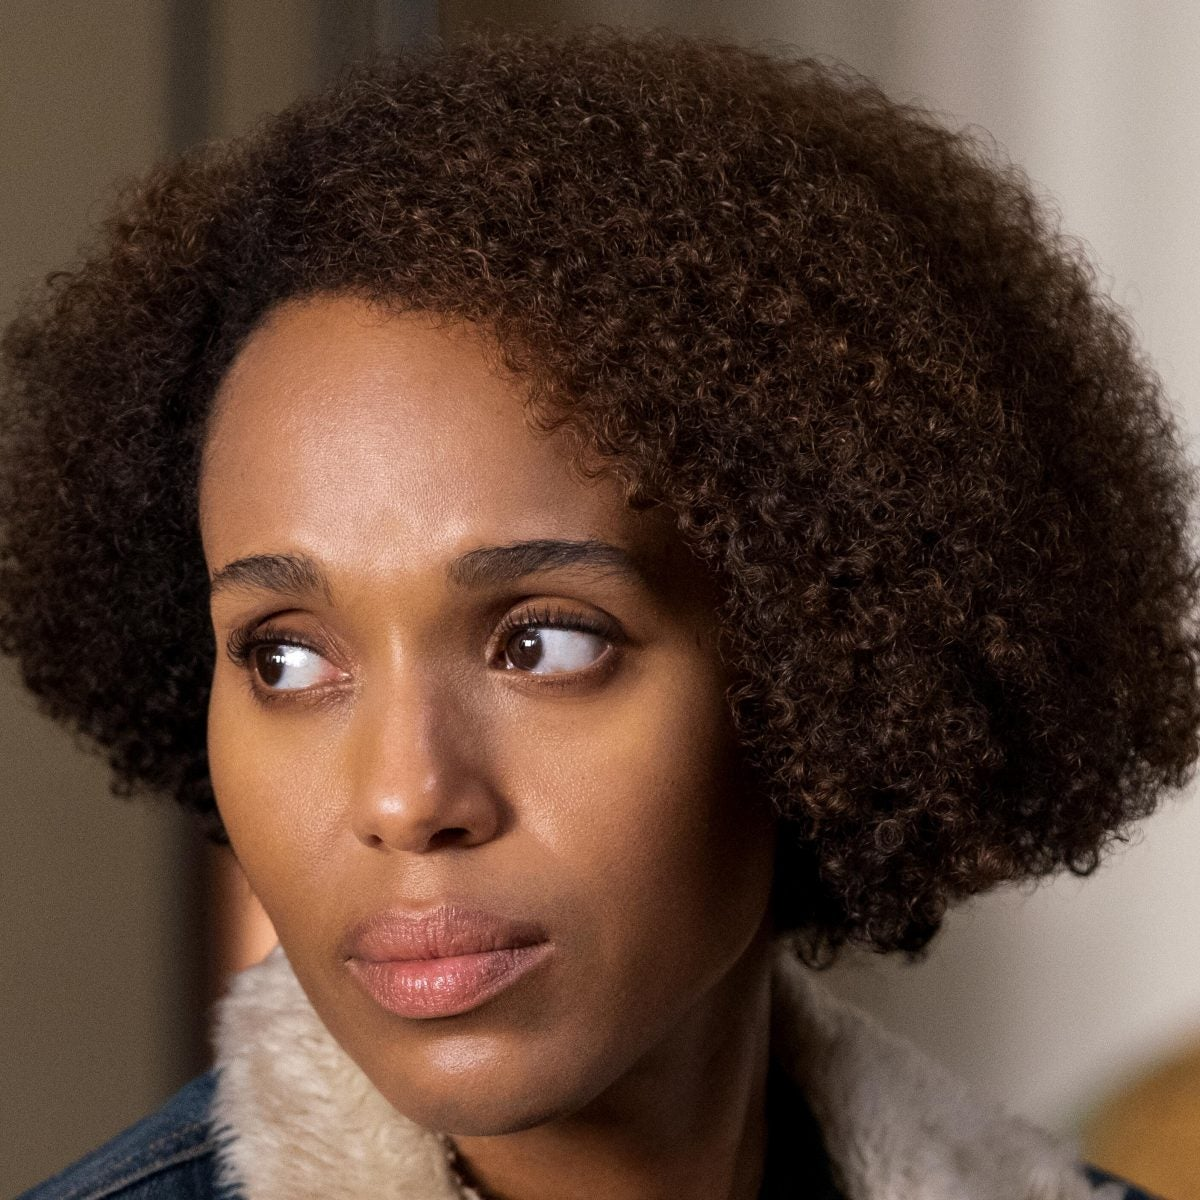 Kerry Washington Reflects On That 'Little Fires Everywhere' Finale That No One Saw Coming